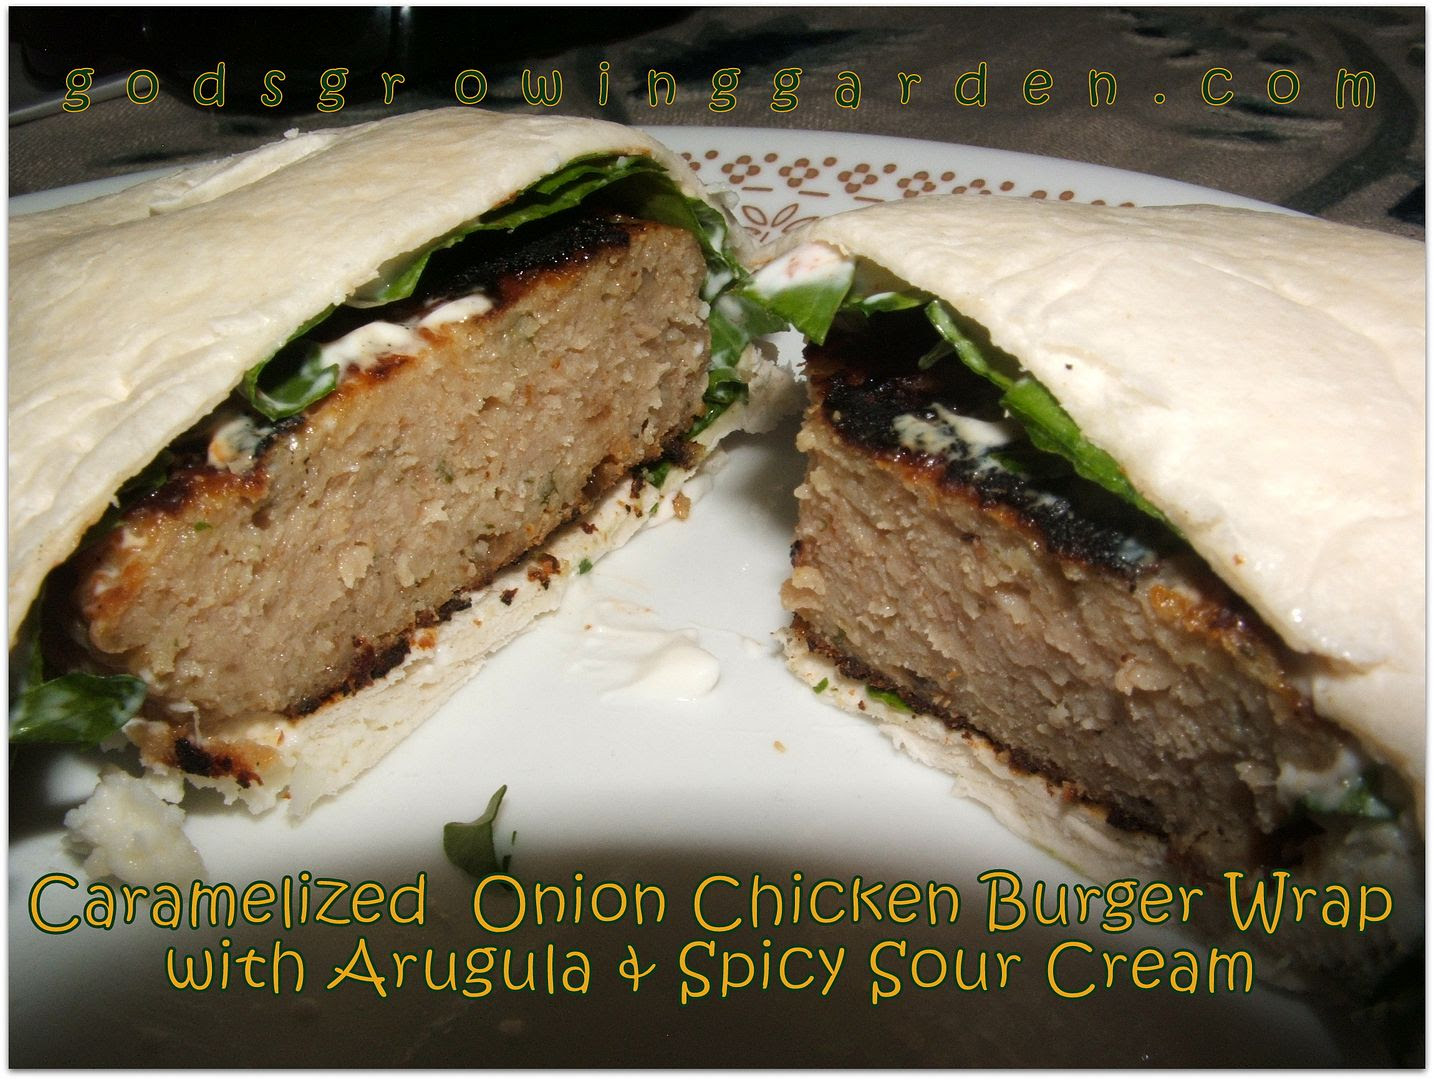 Chicken Burger by Angie Ouellette-Tower for godsgrowinggarden.com photo 015_zps9d5dda66.jpg